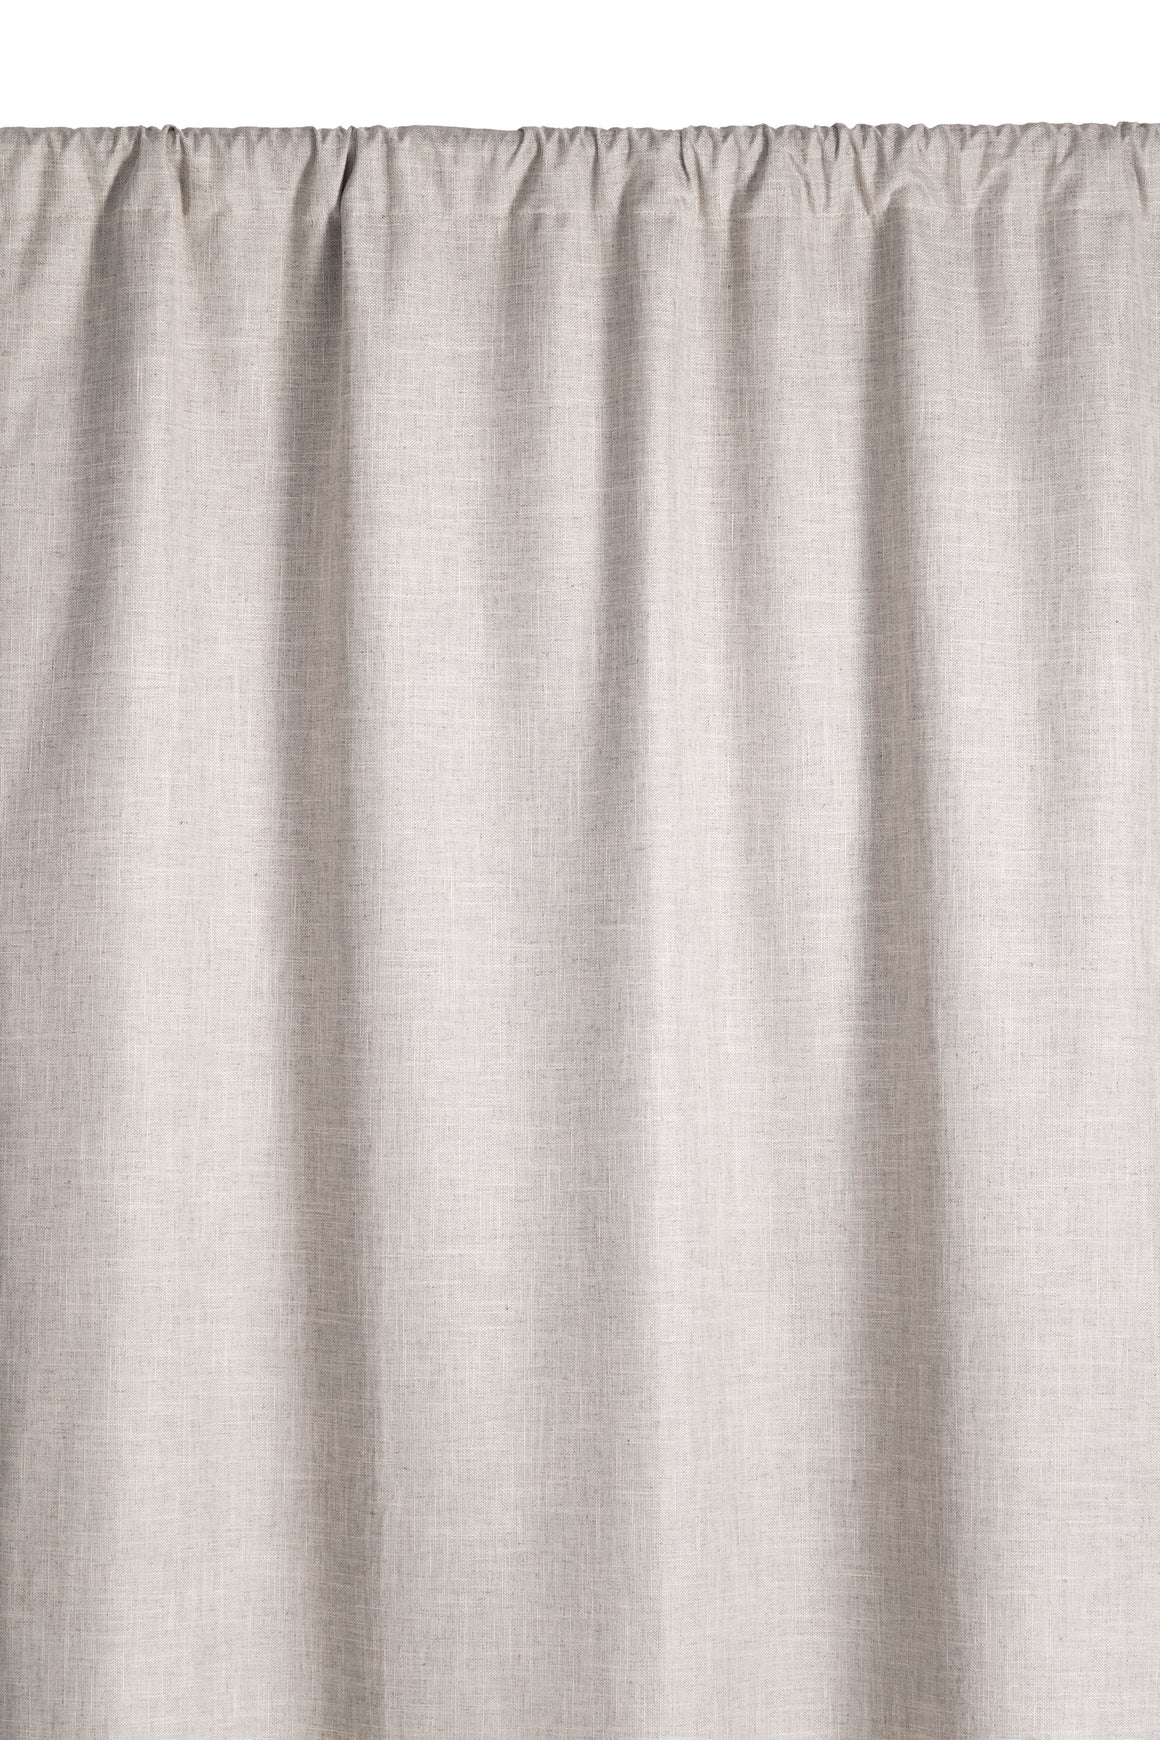 Cortina Blackout Linen Silver